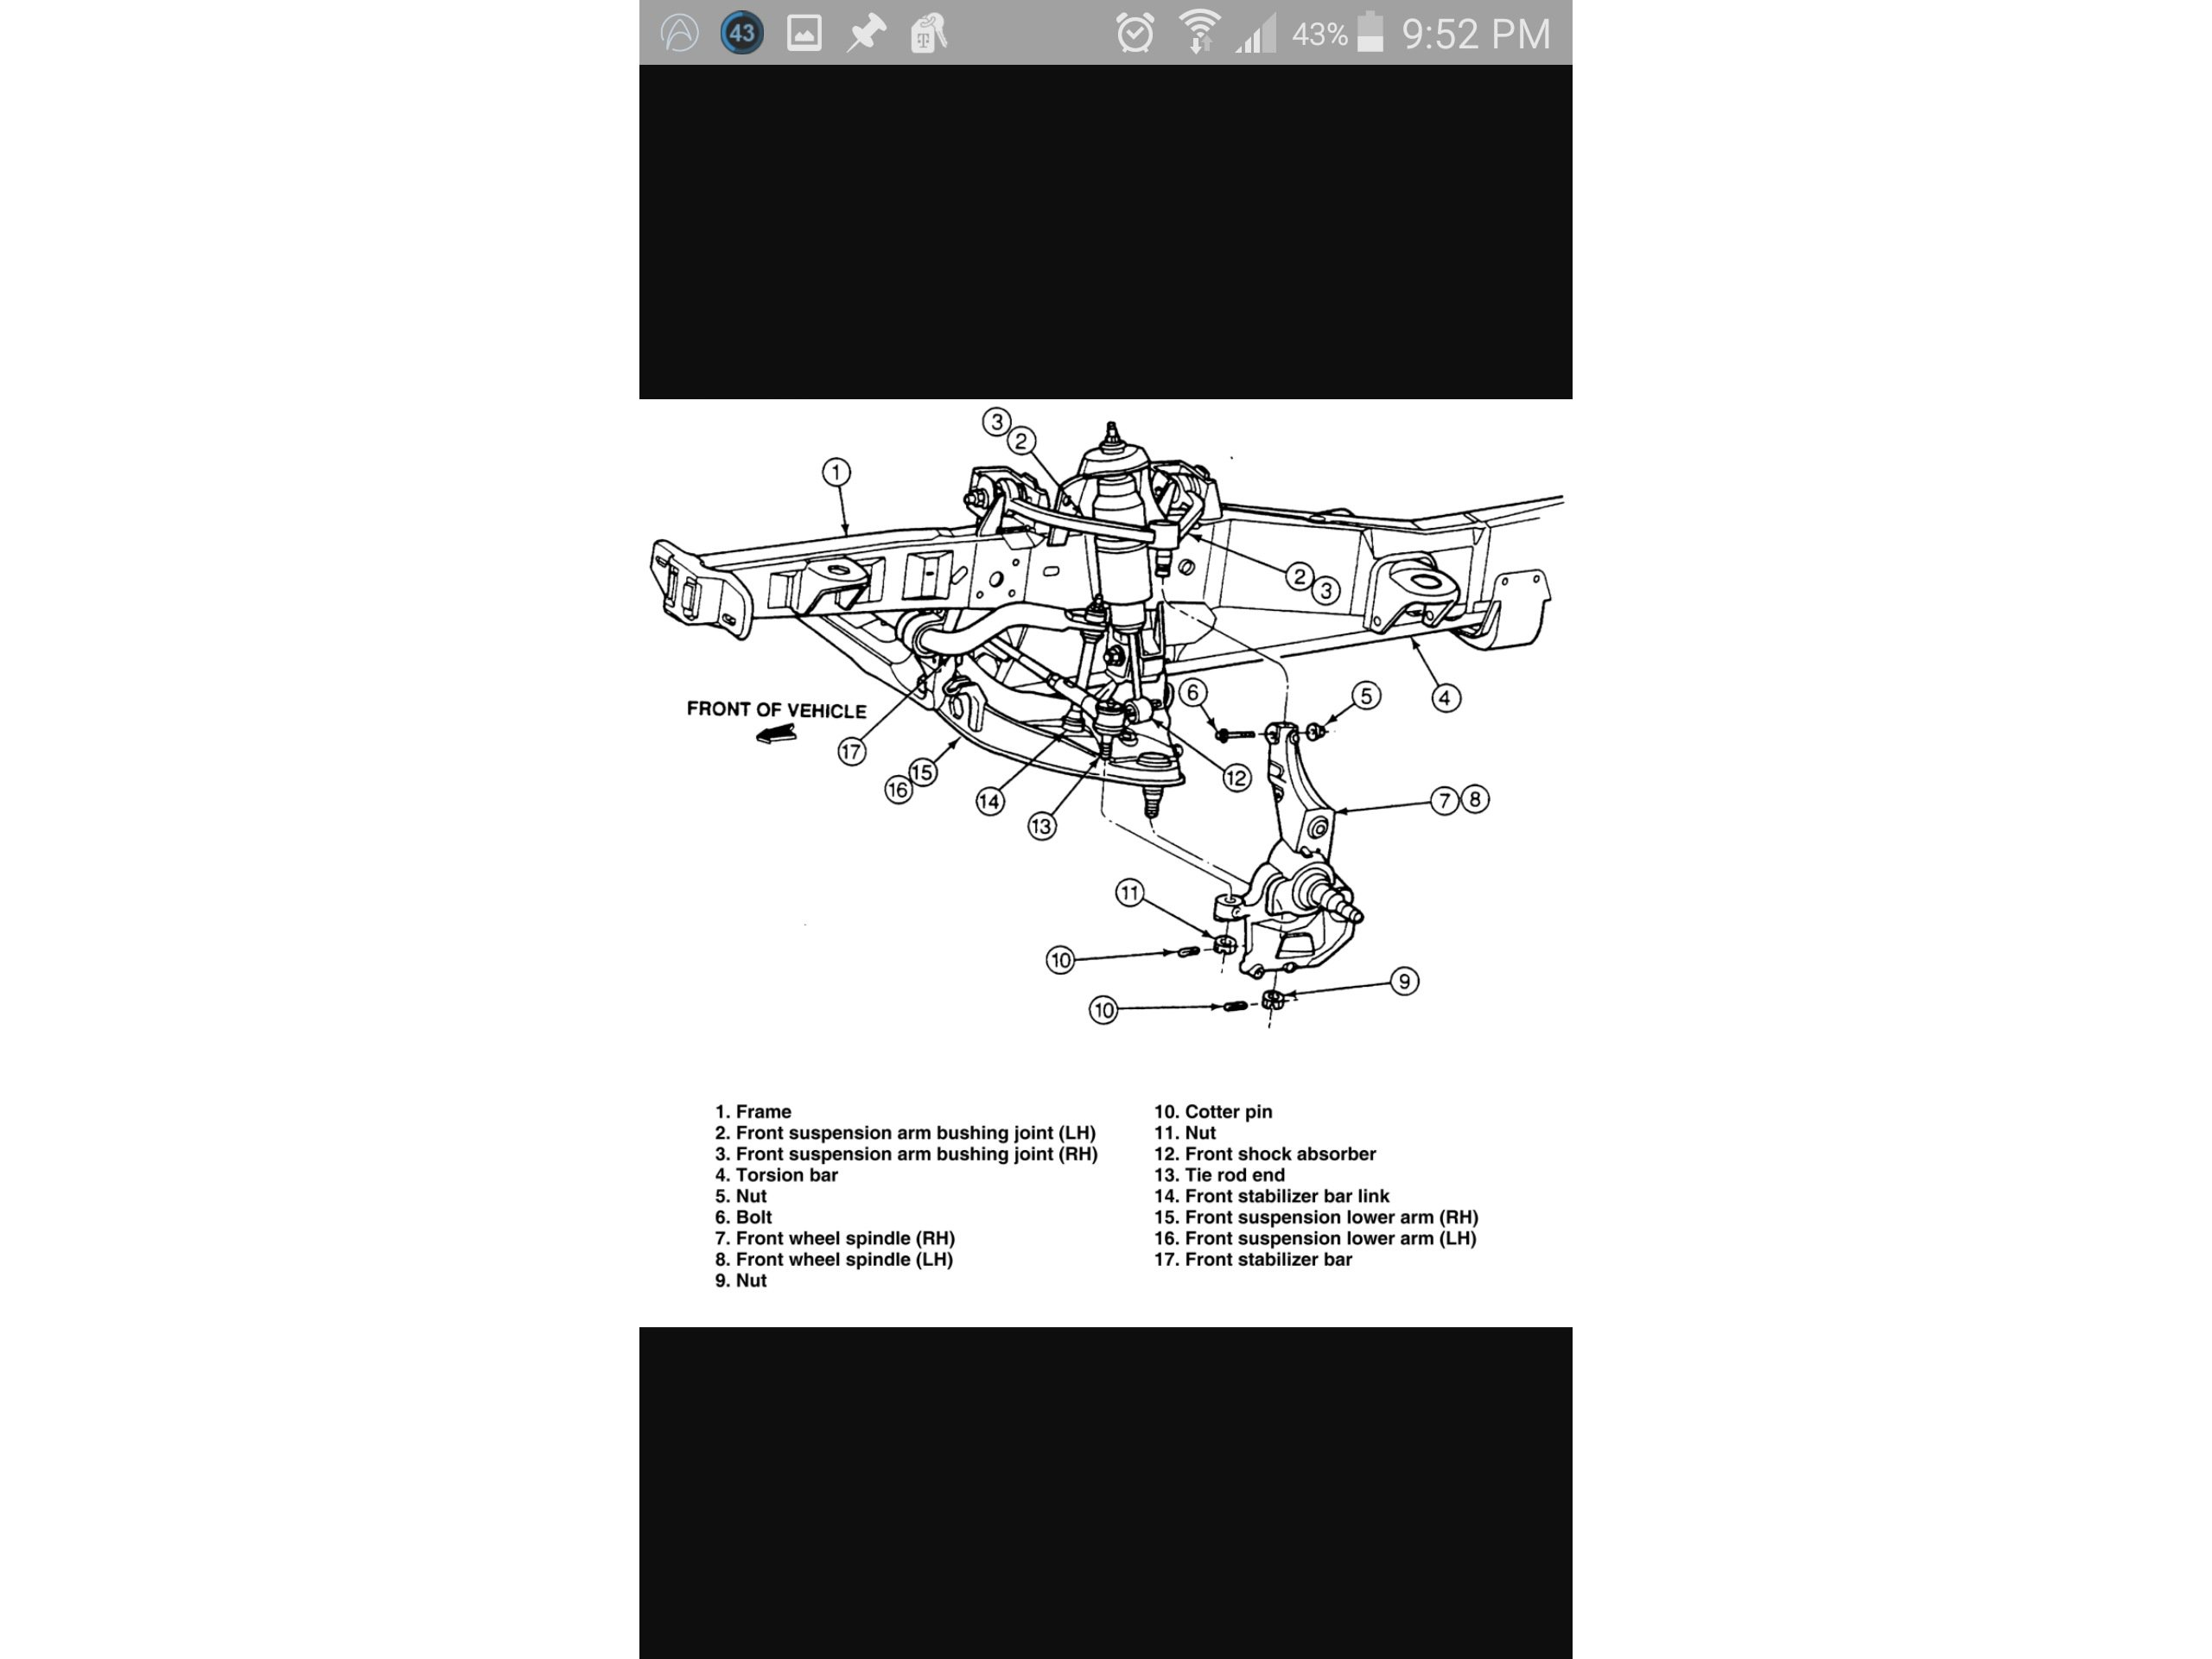 Disassembling 1989 1992 Ford Ranger Front Suspension 1989 1990 1991 1992 Ifixit Repair Guide